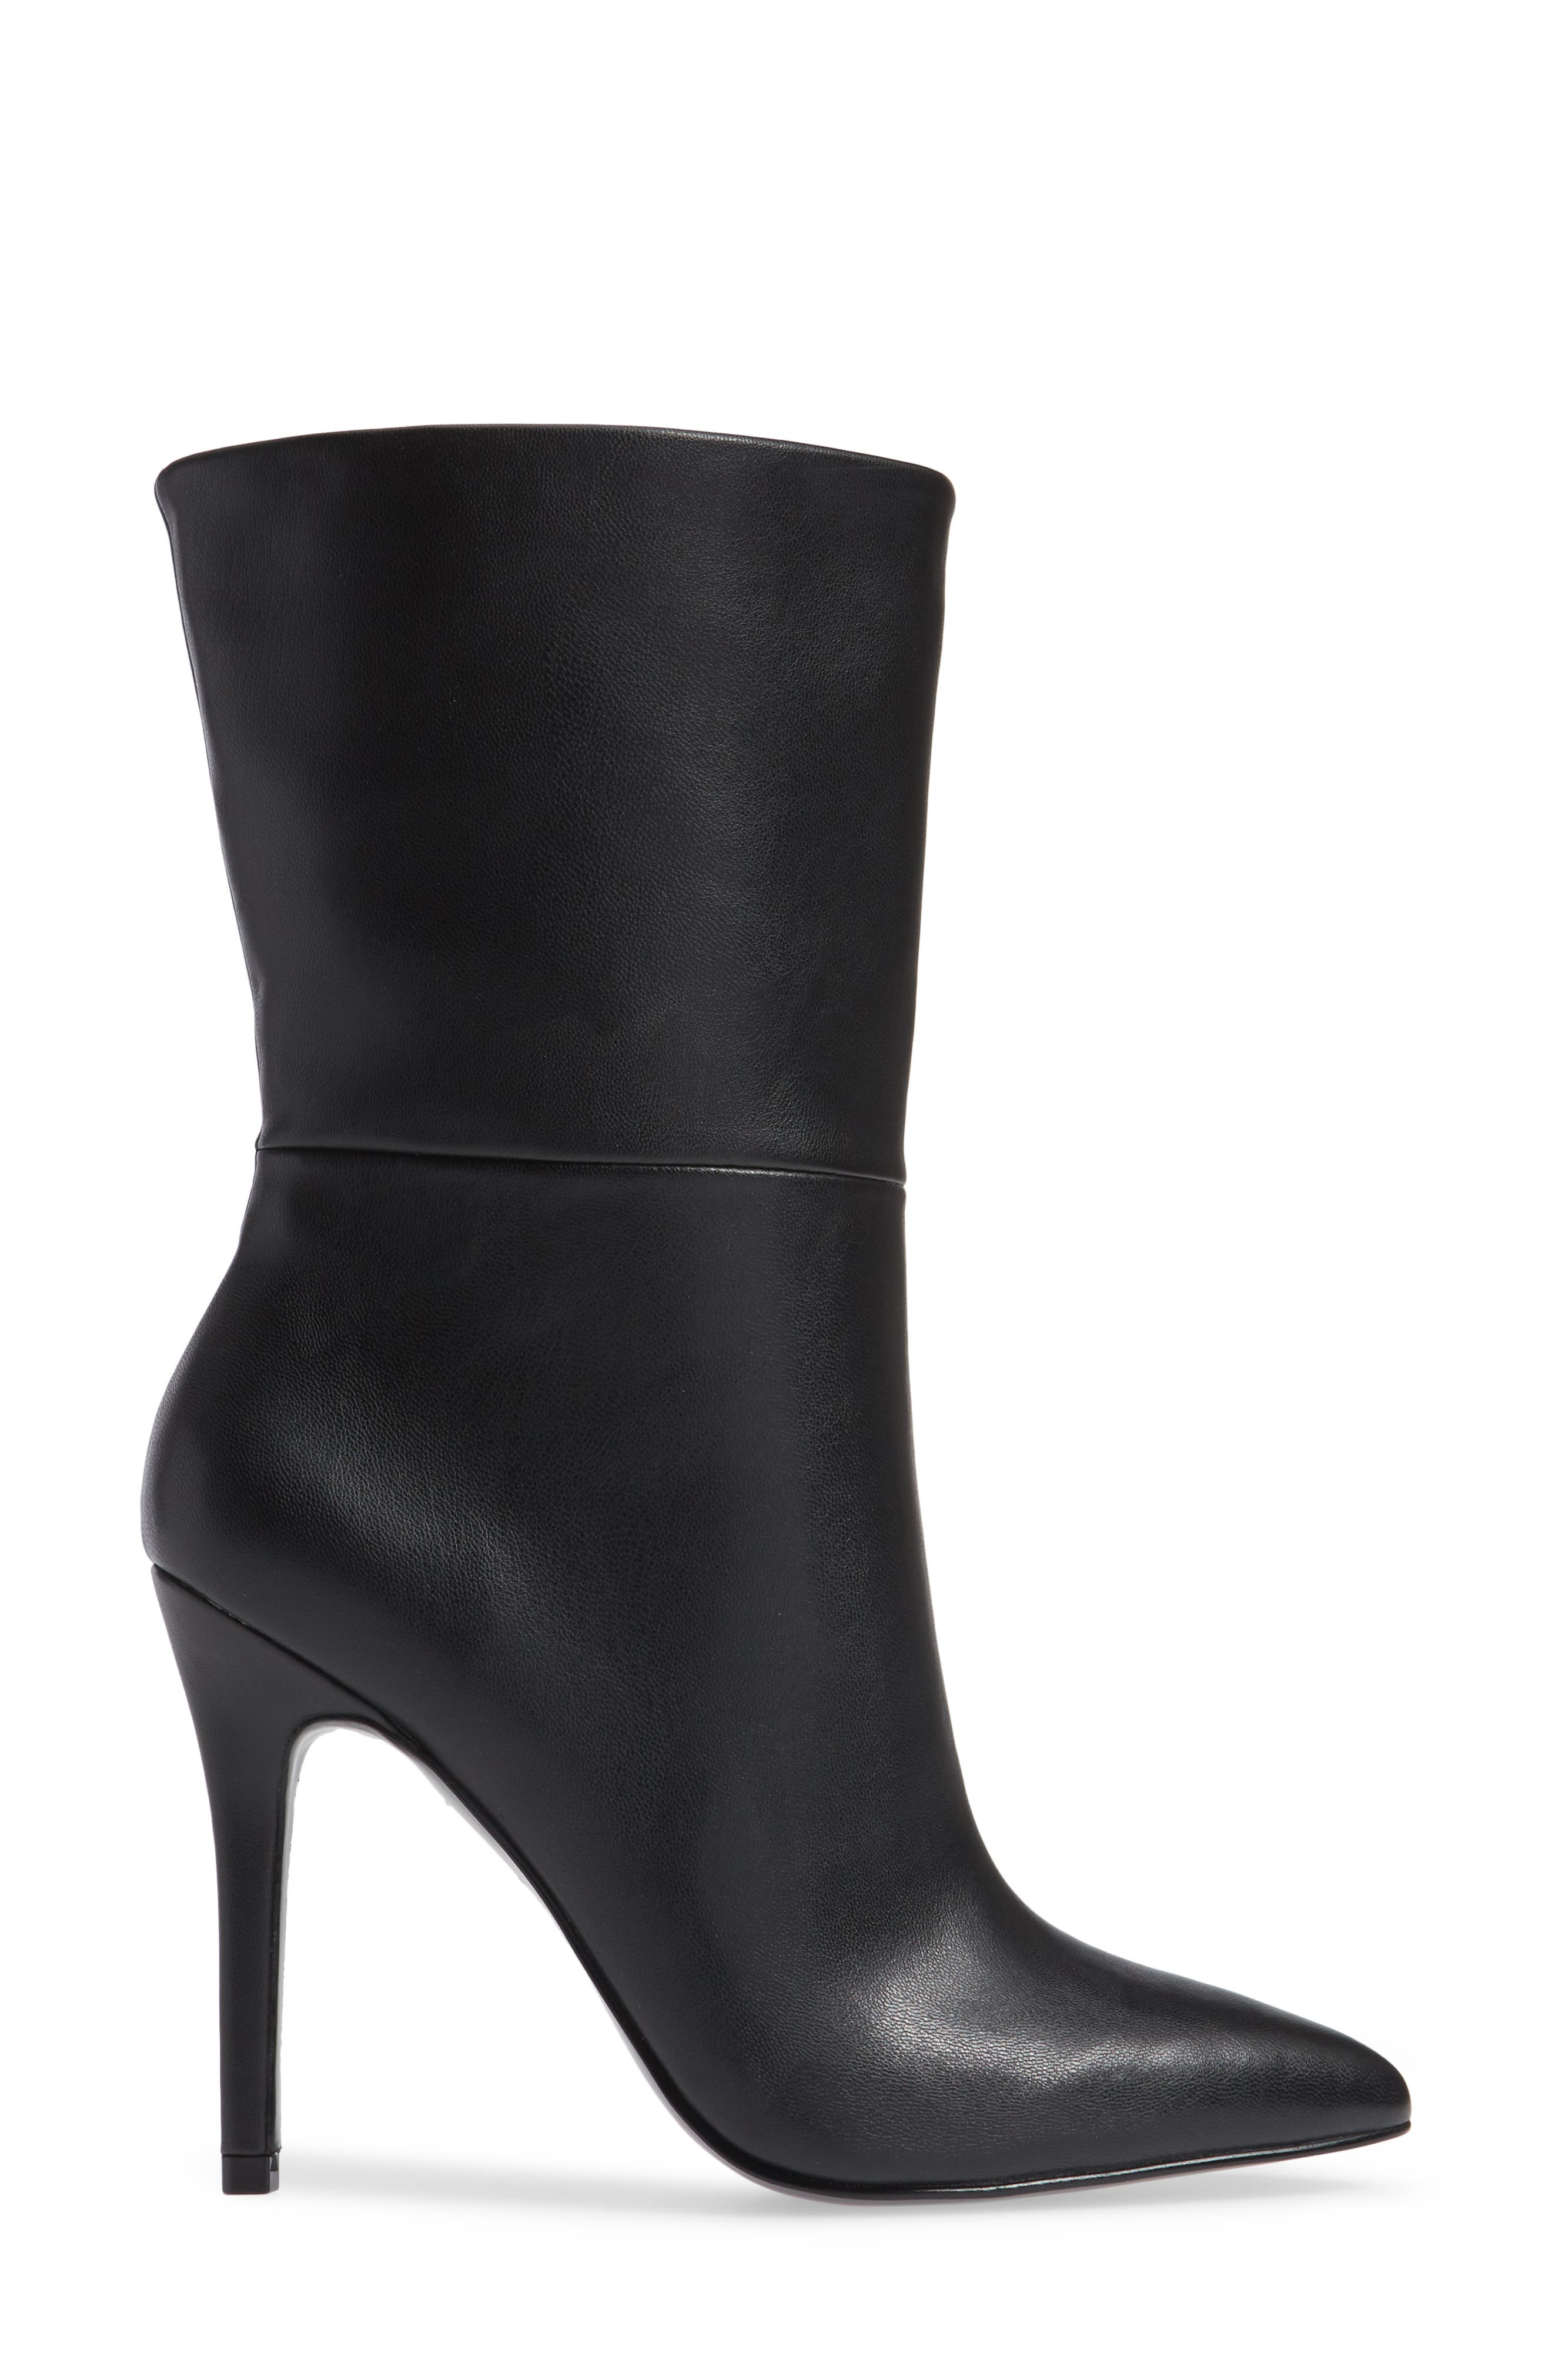 CHARLES BY CHARLES DAVID, Palisades Bootie, Alternate thumbnail 3, color, BLACK FAUX LEATHER